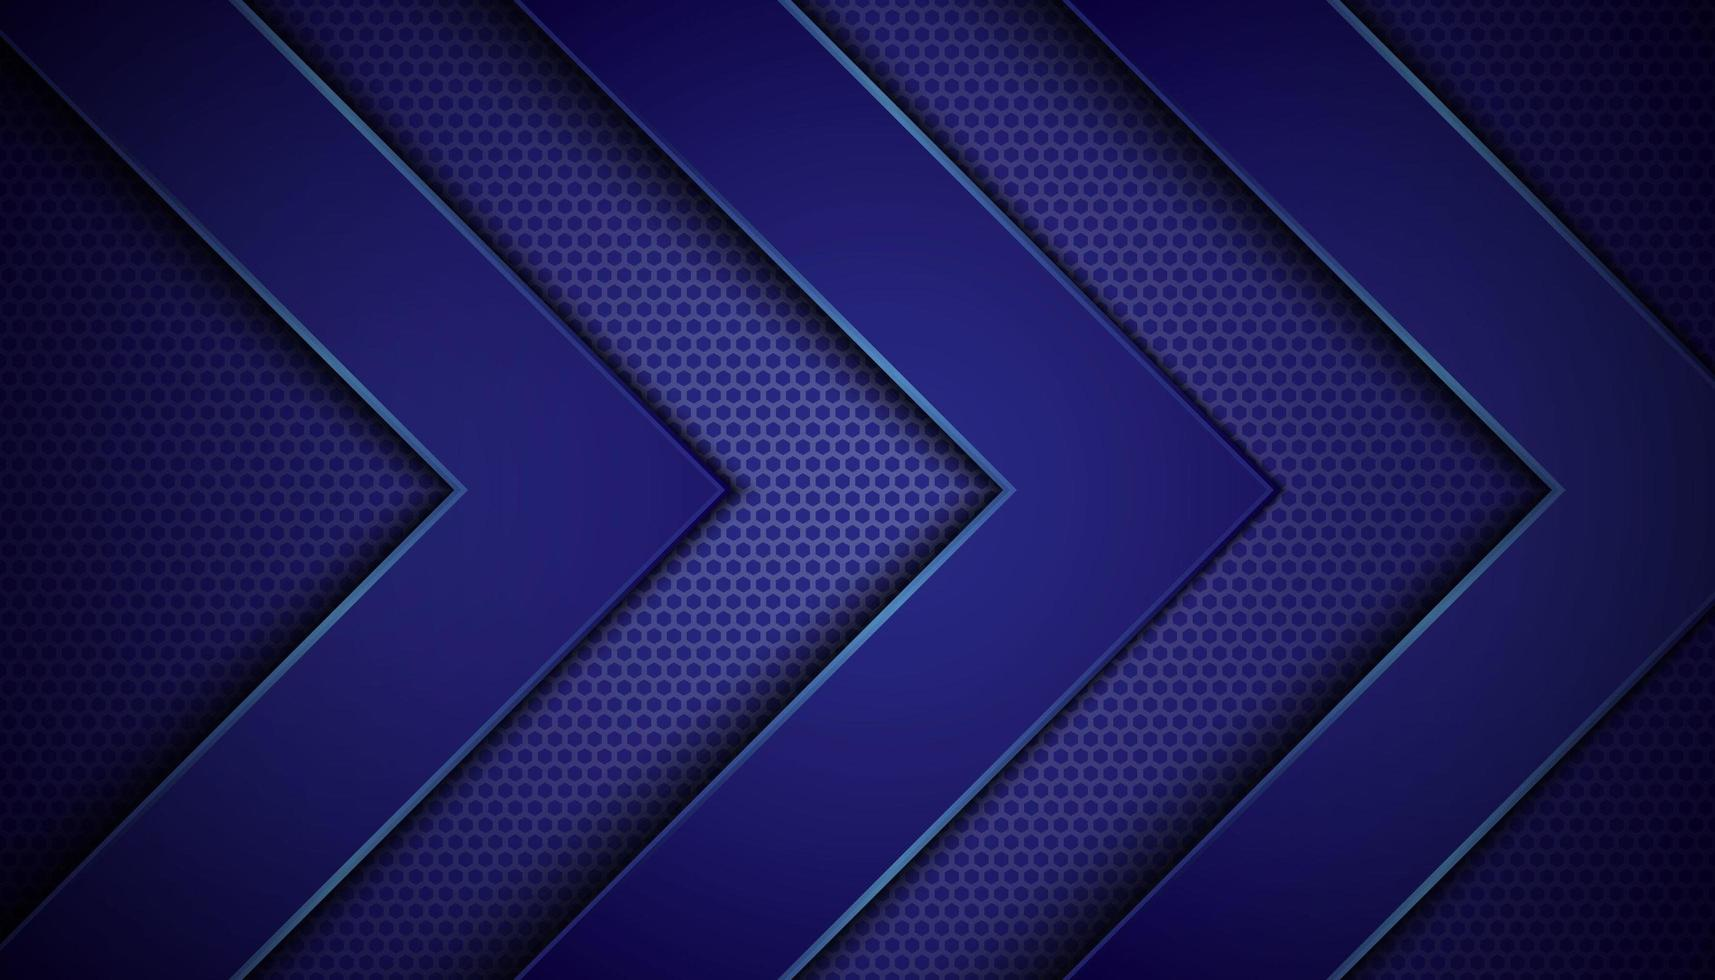 Dark Blue Background with Arrow Layers vector